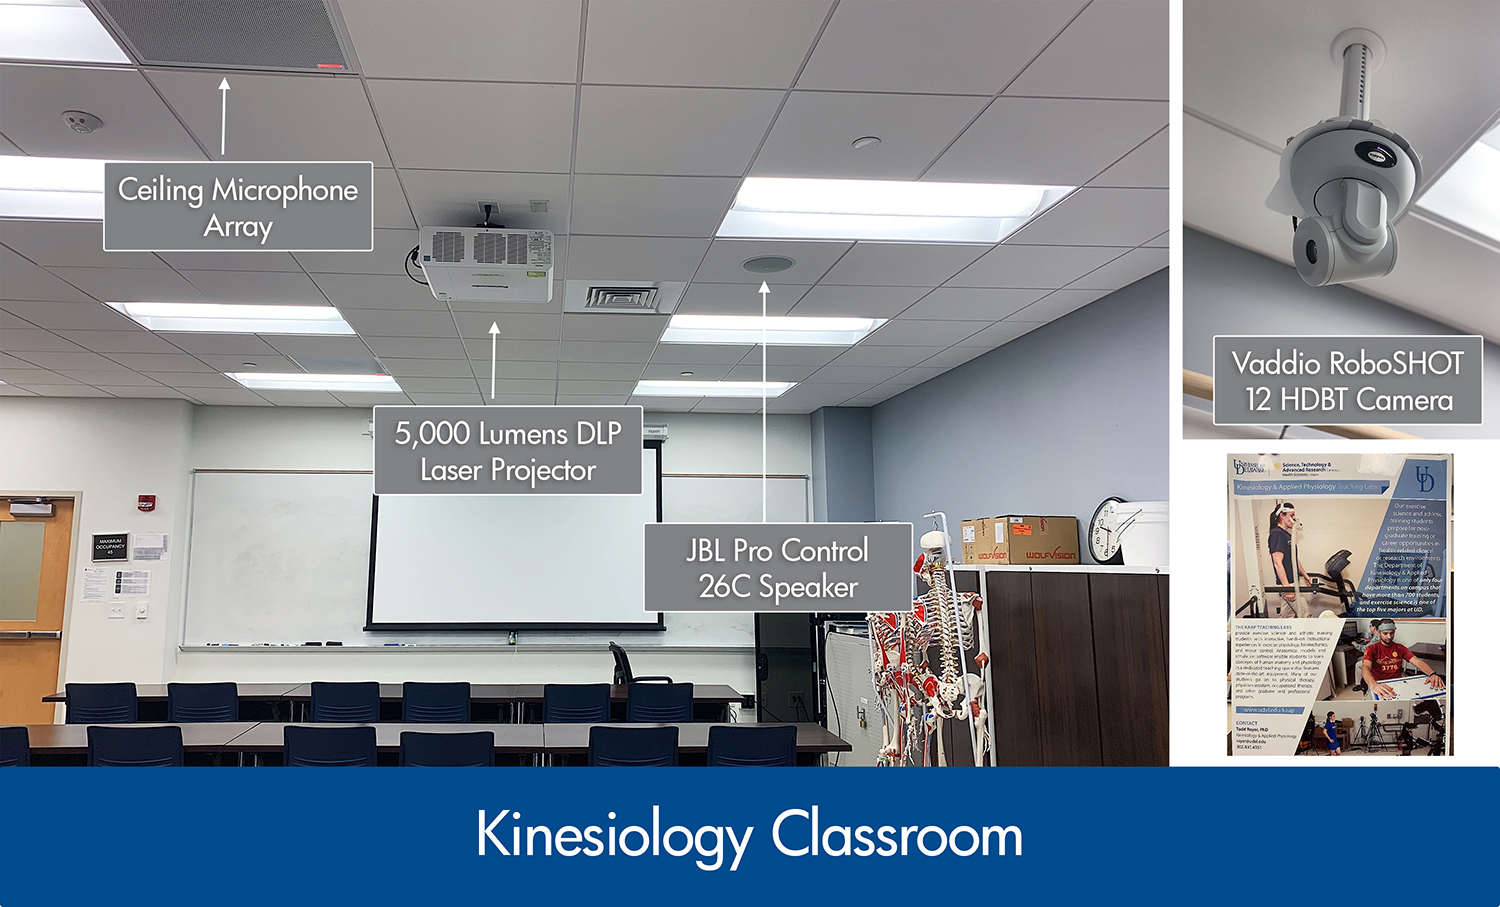 Systems integration in kinesiology classroom